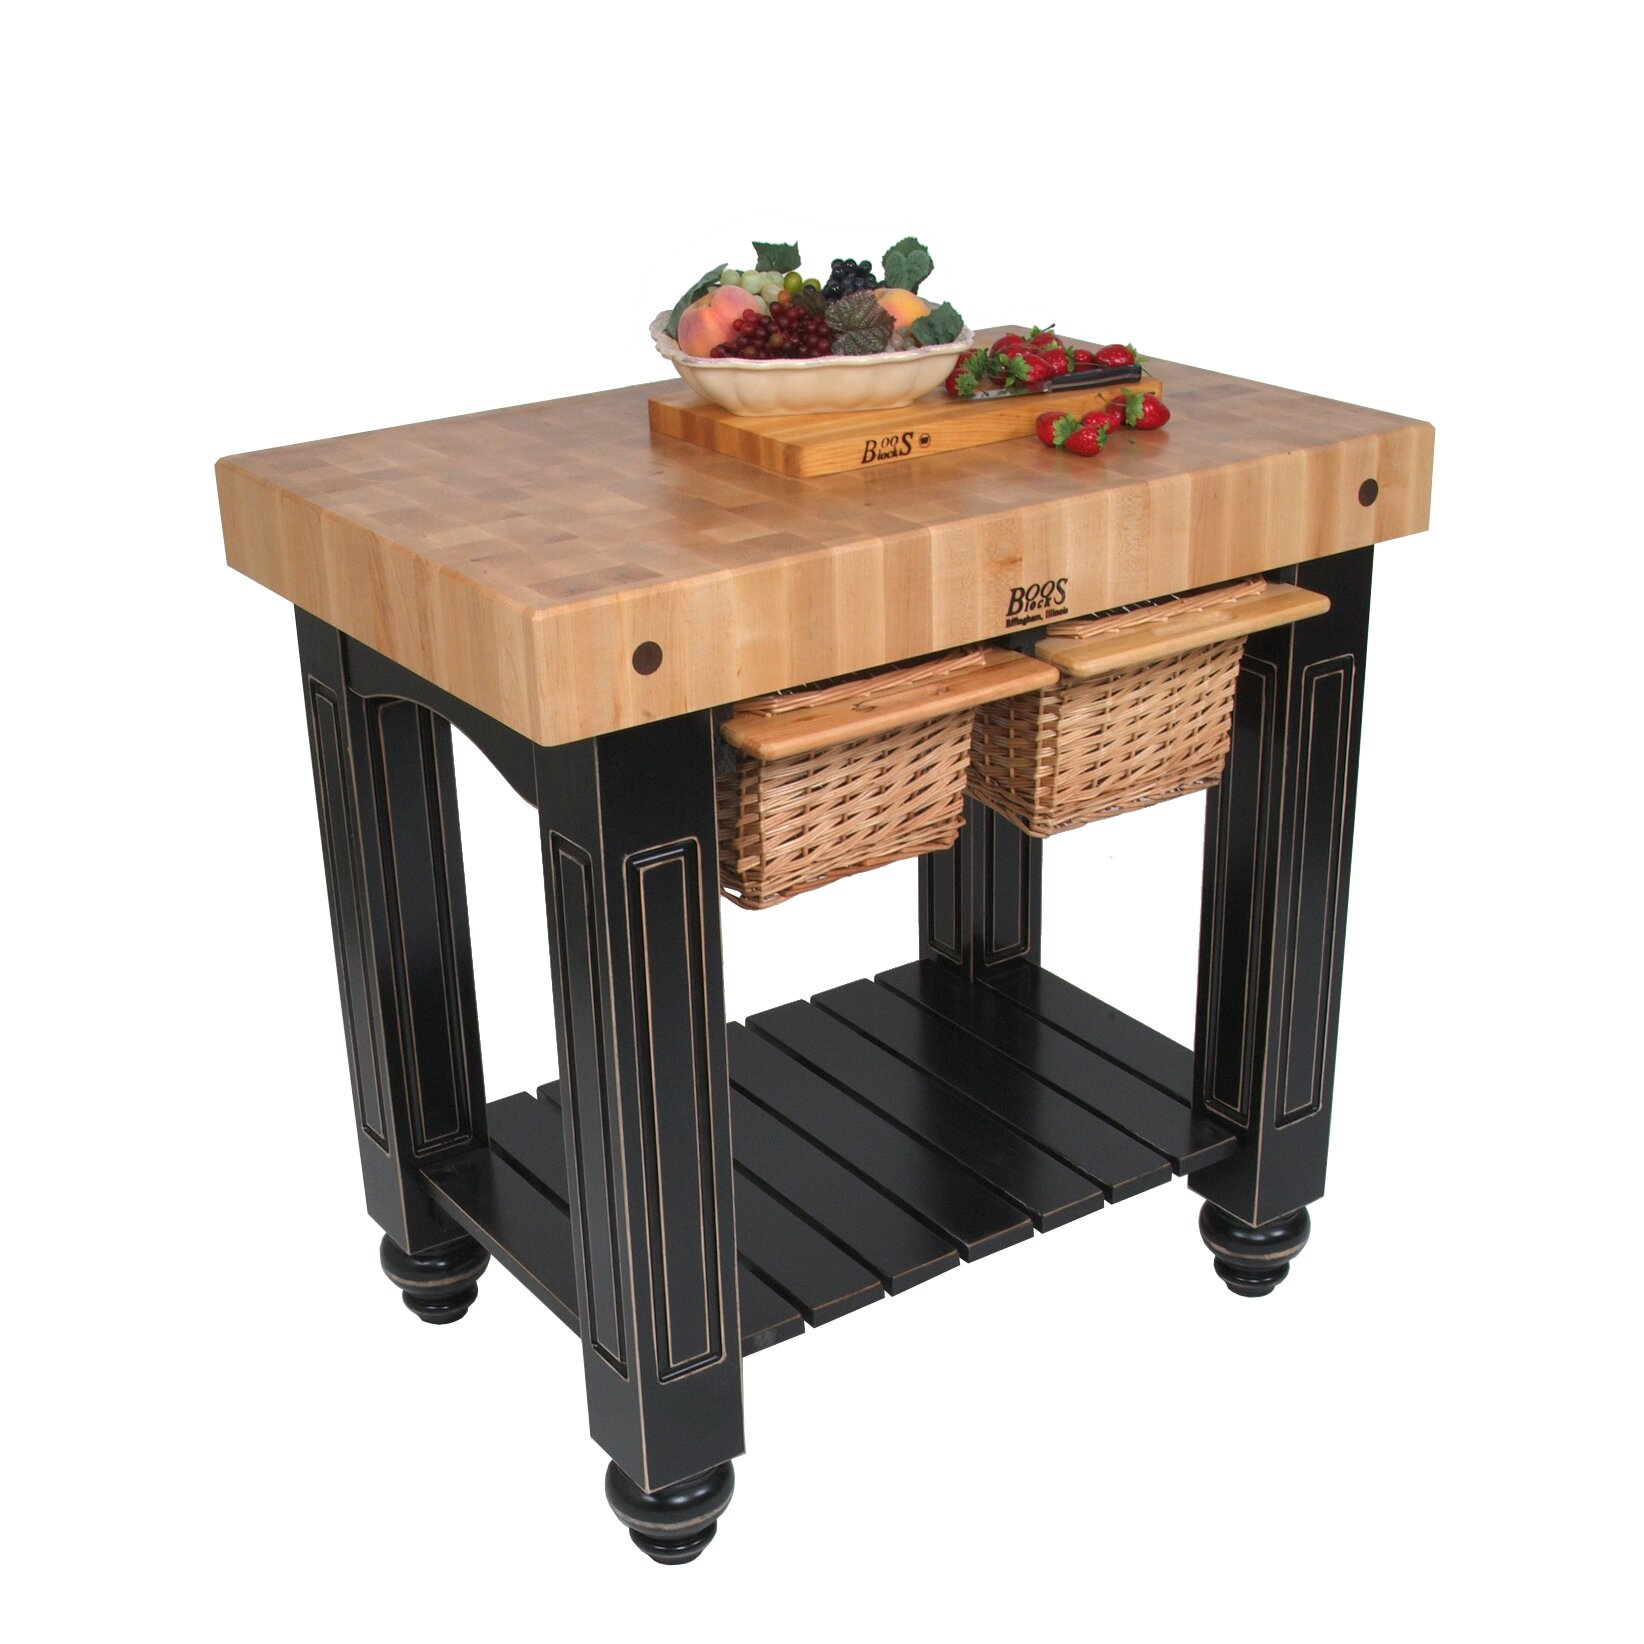 Kitchen Island Butcher Block Tops: John Boos American Heritage Prep Table With Butcher Block